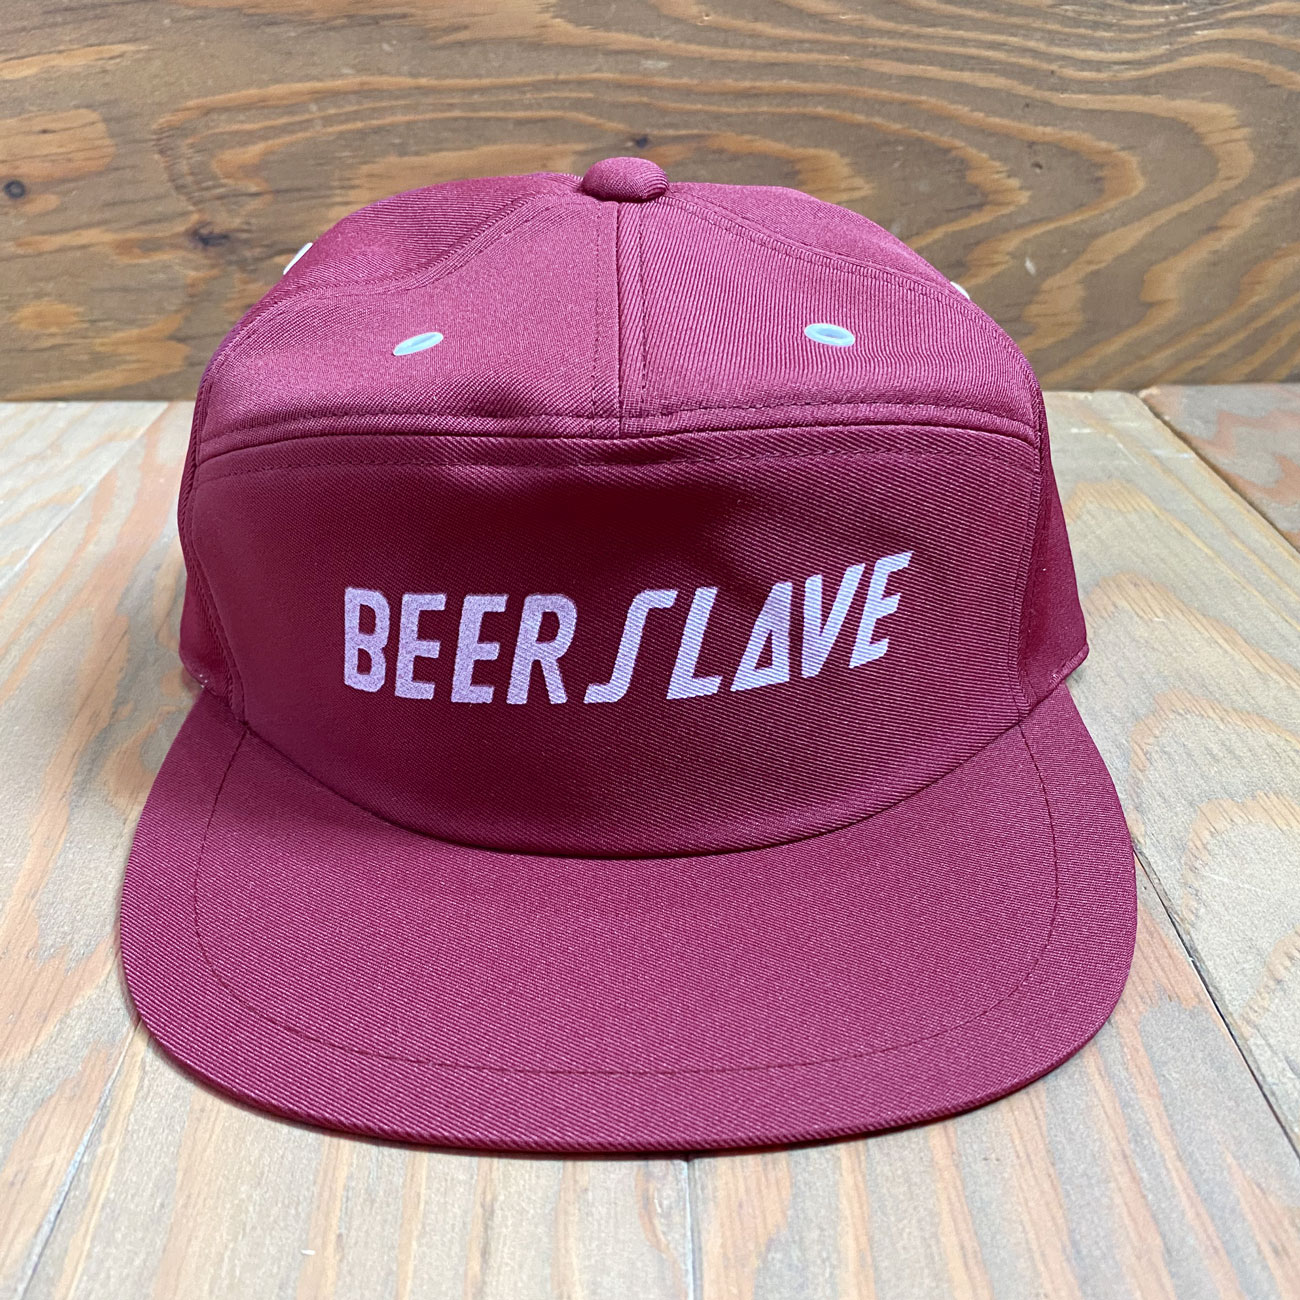 BEER SLAVE WORK CAP BURGUNDY